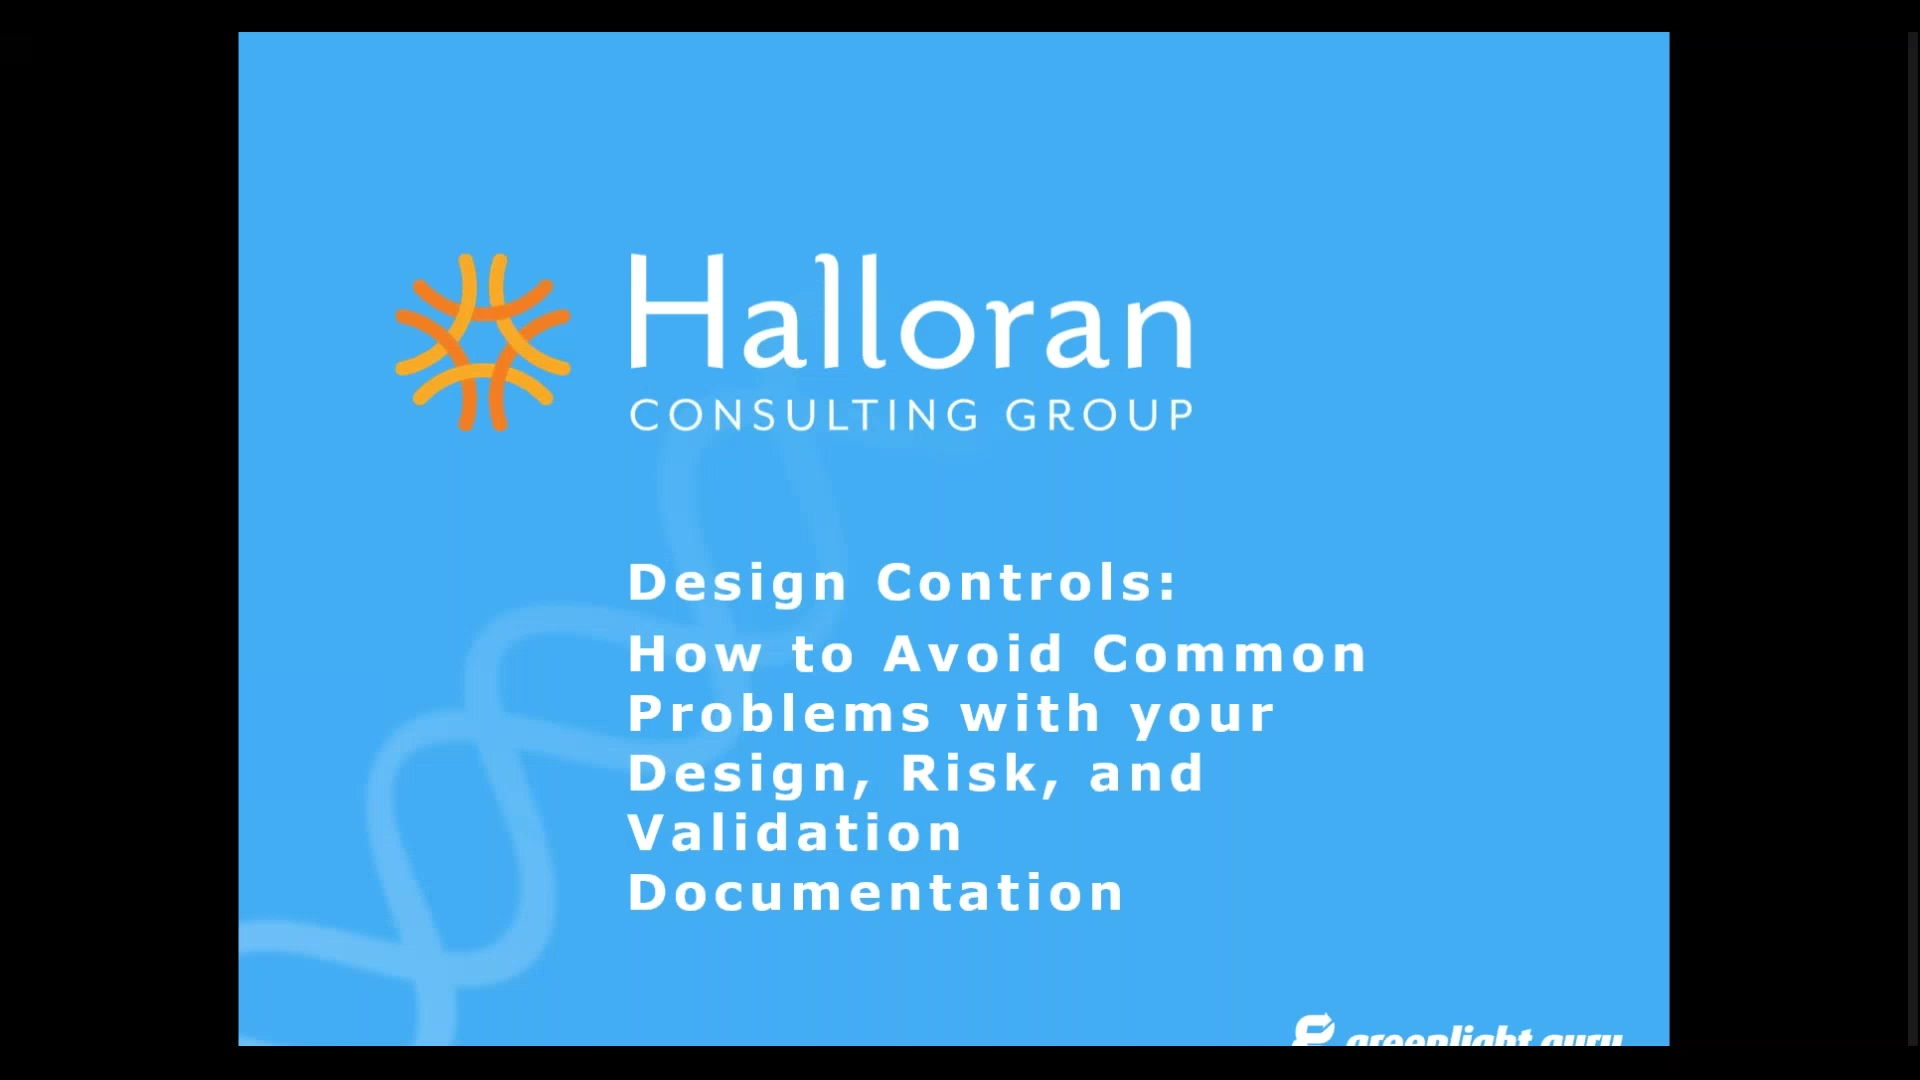 How to Avoid Common Problems with your Design, Risk, and Validation Documentation